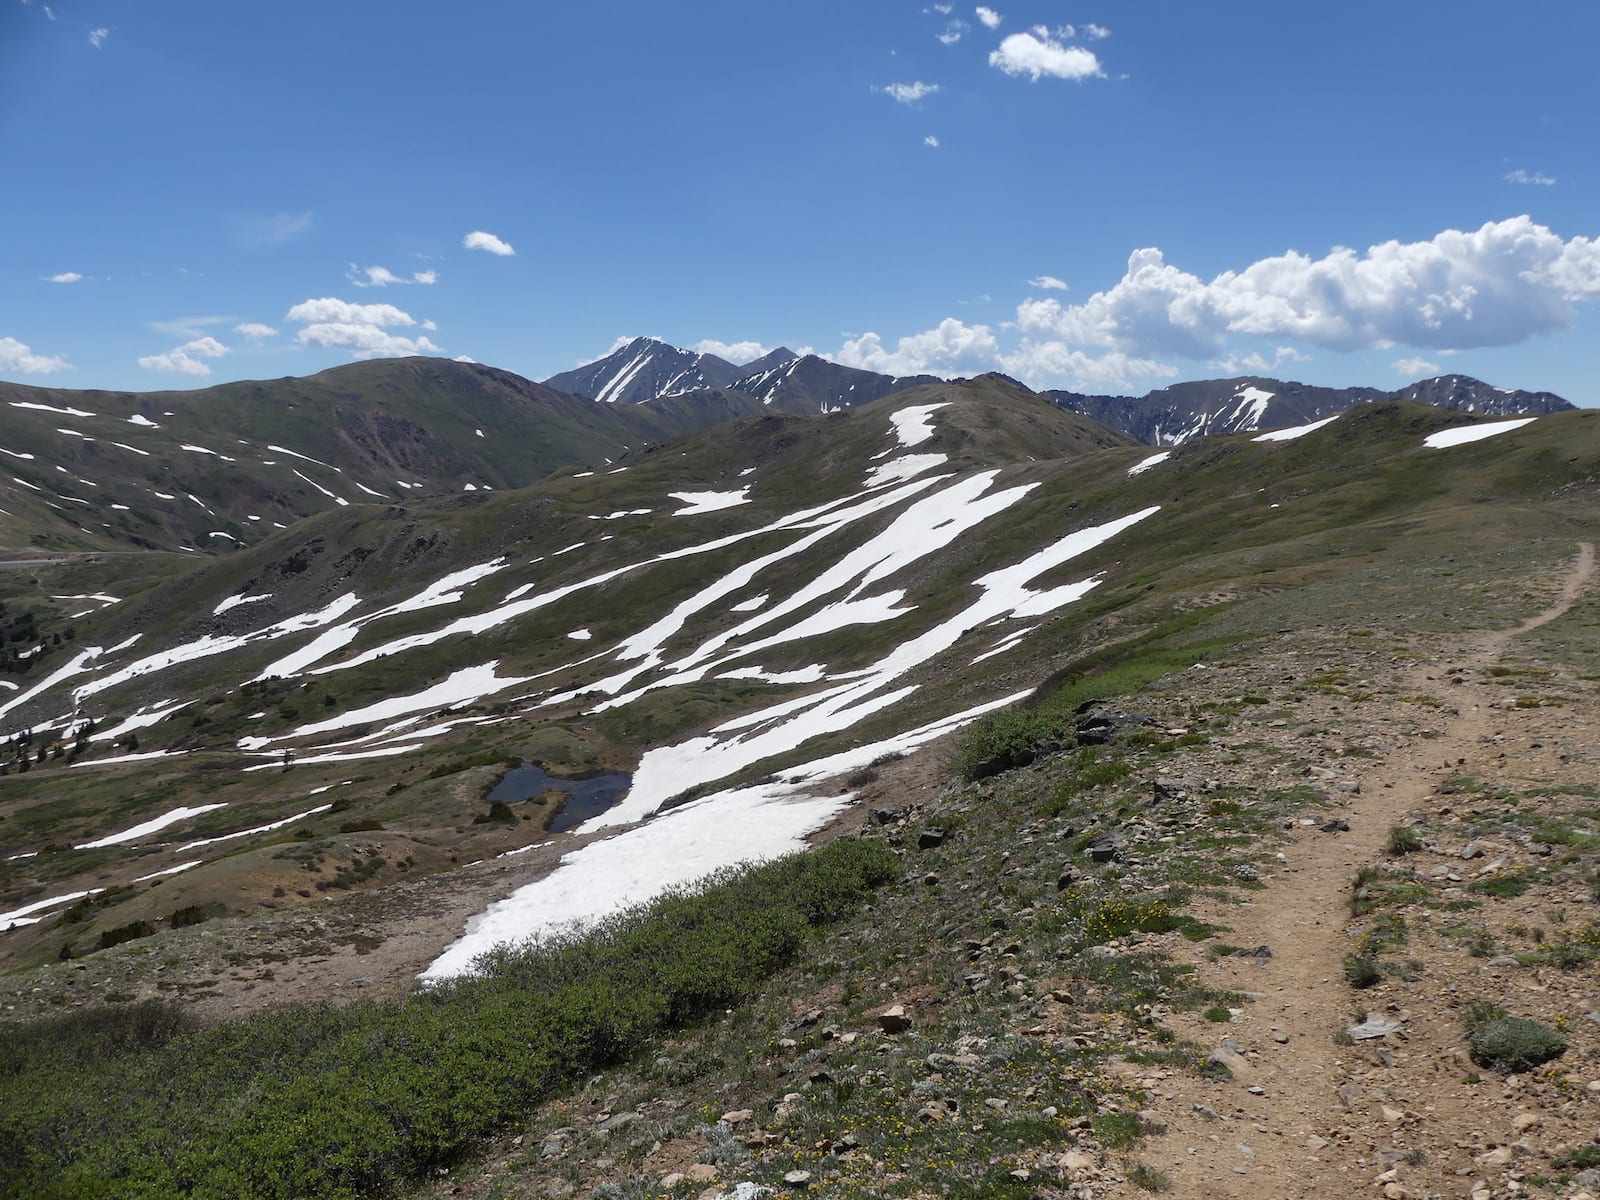 West Ridge Trail from Loveland Pass, CO